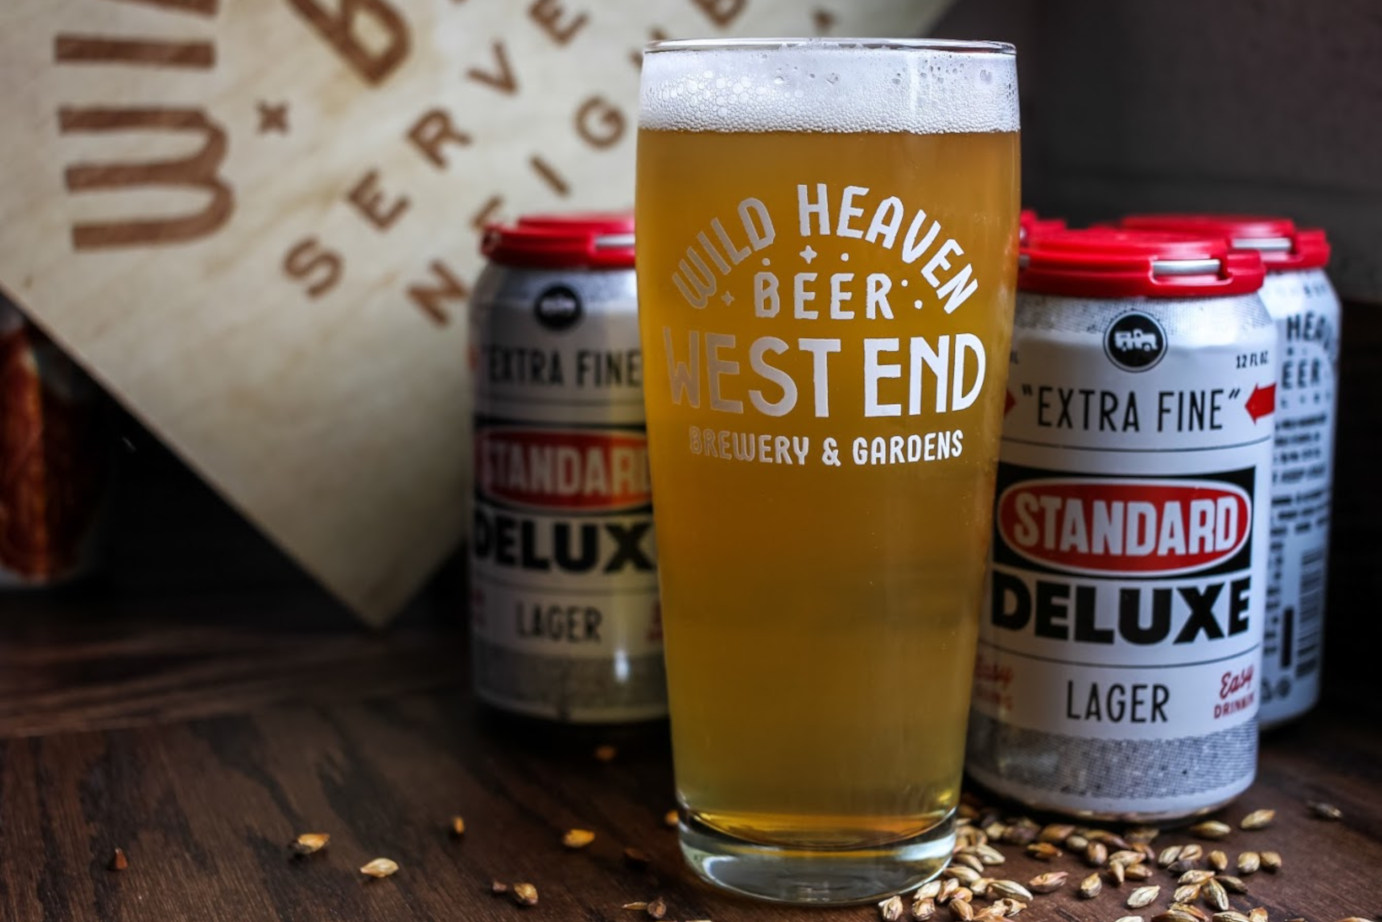 Standard deluxe lager glass and can